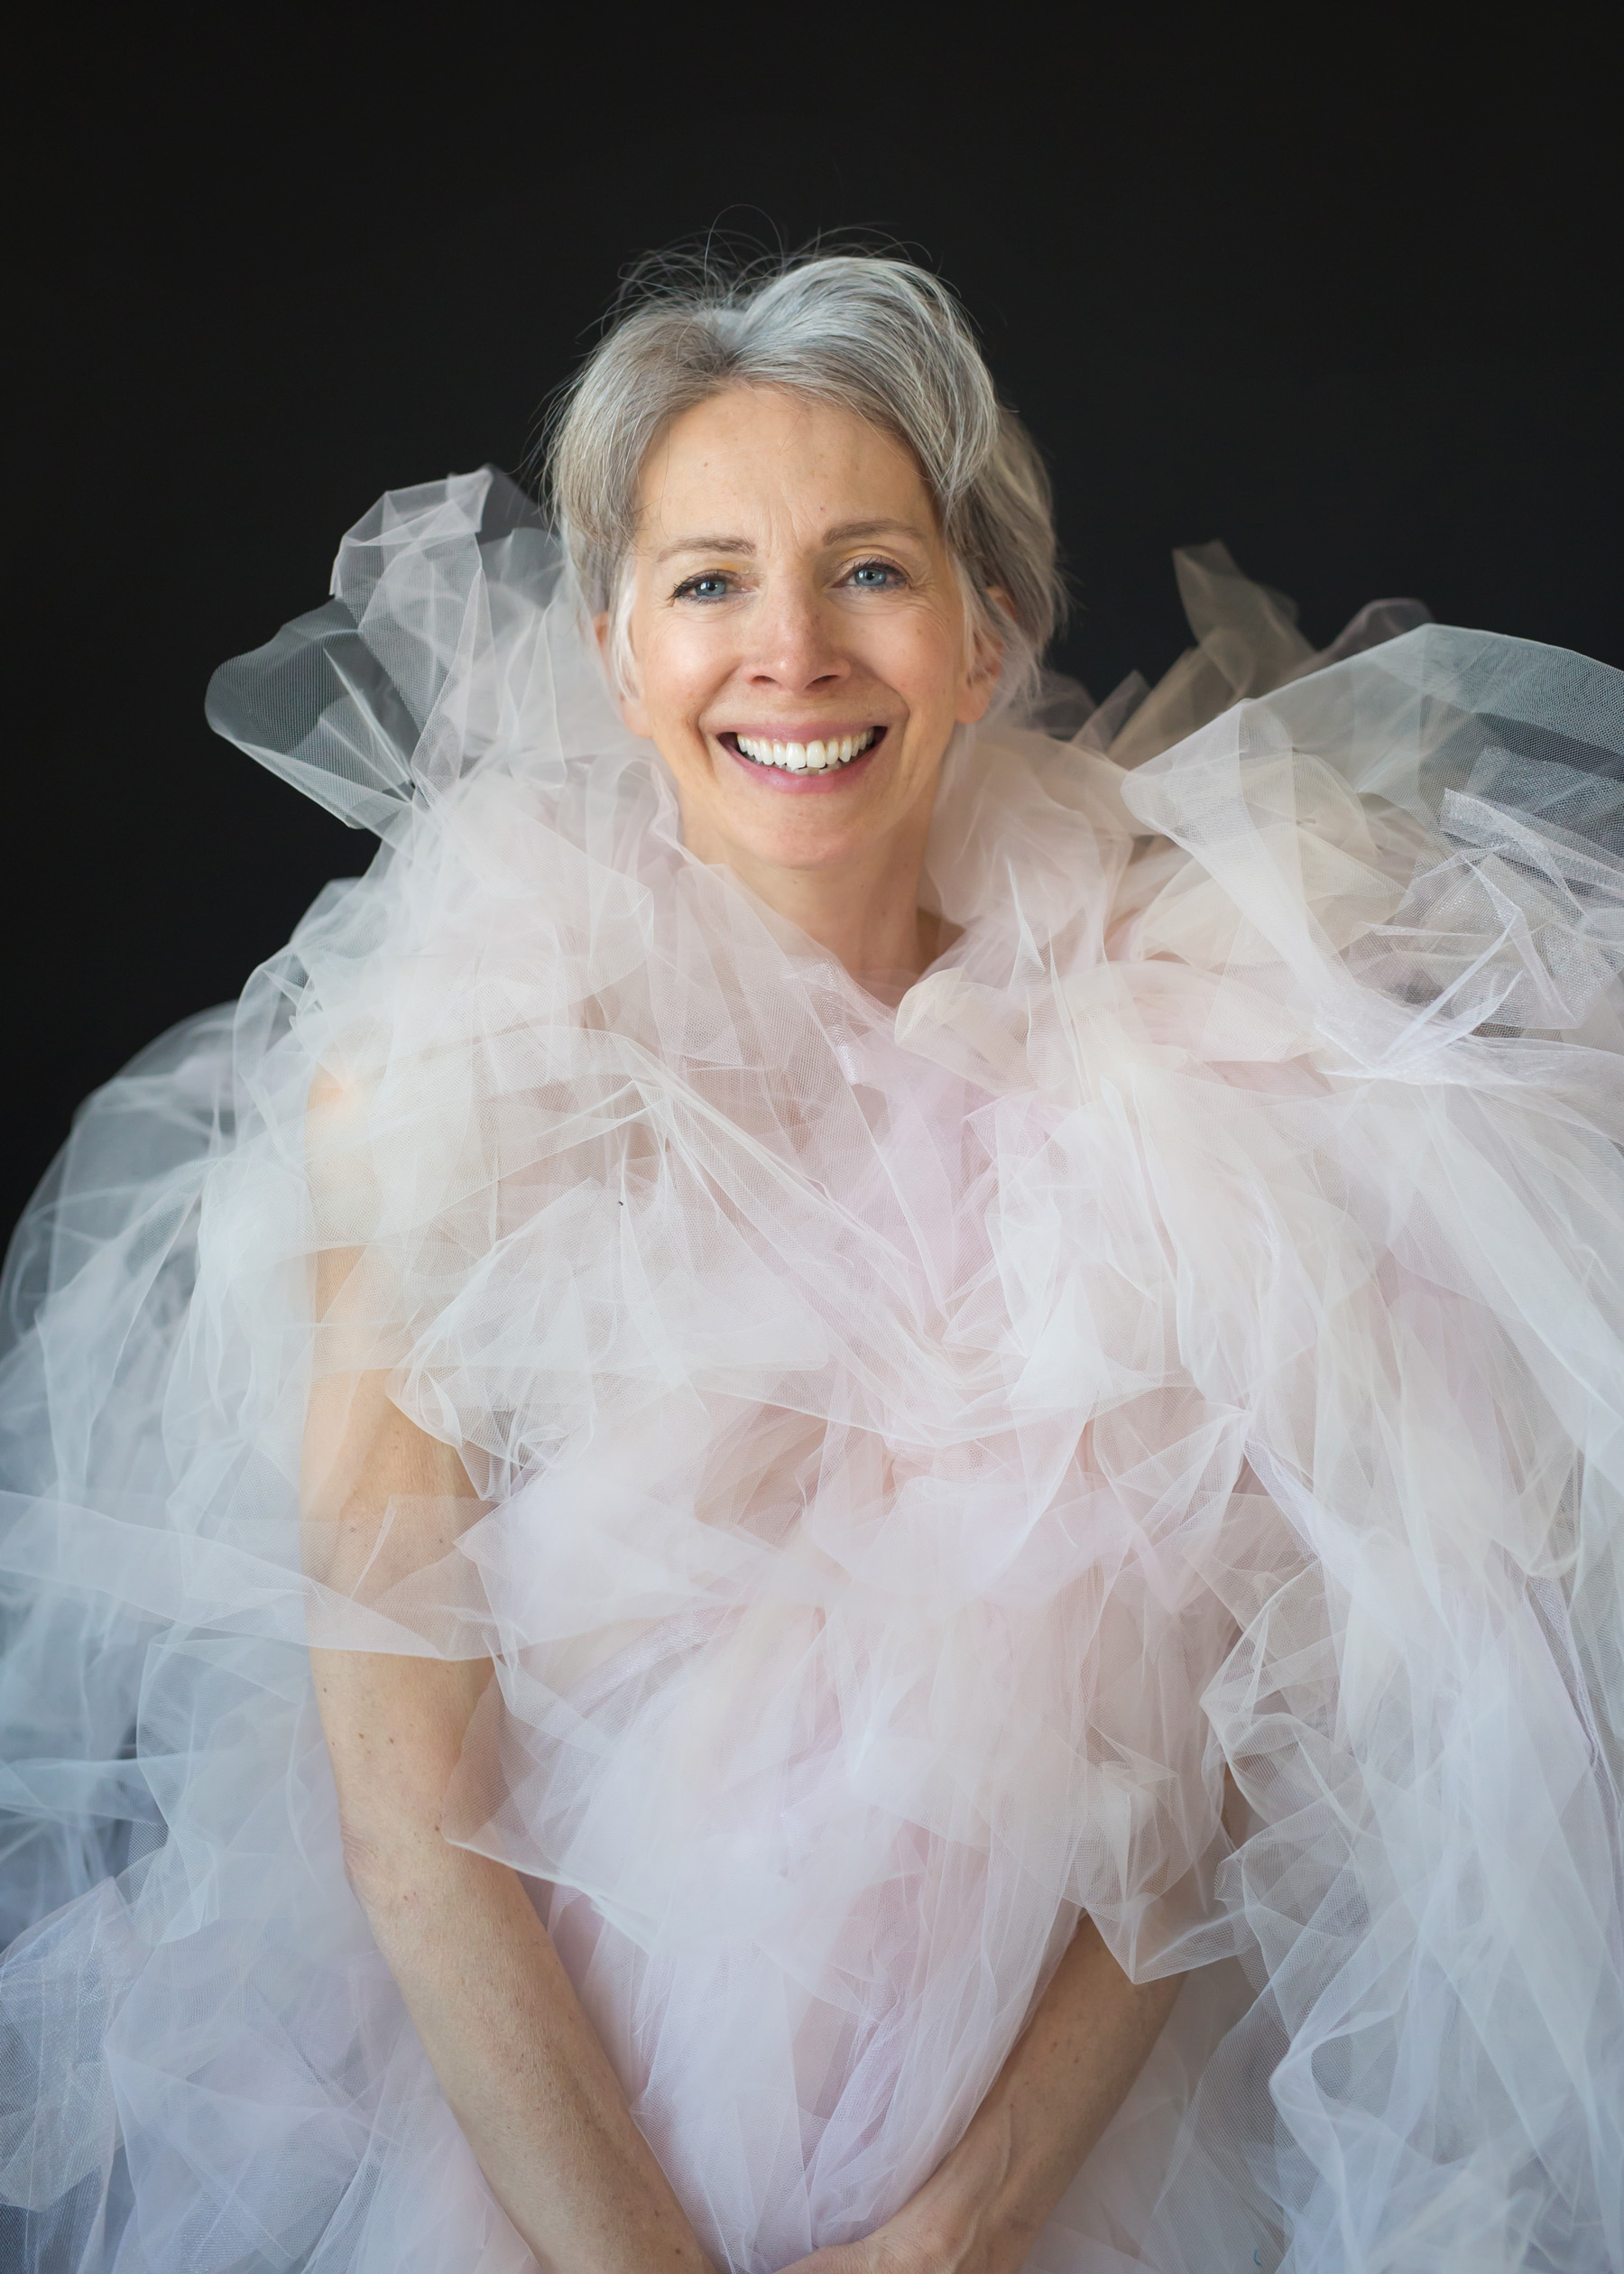 Valerie Madonia portrait in tulle during photo session with Denver dance photographer Jennifer Koskinen, Merritt Portrait Studio